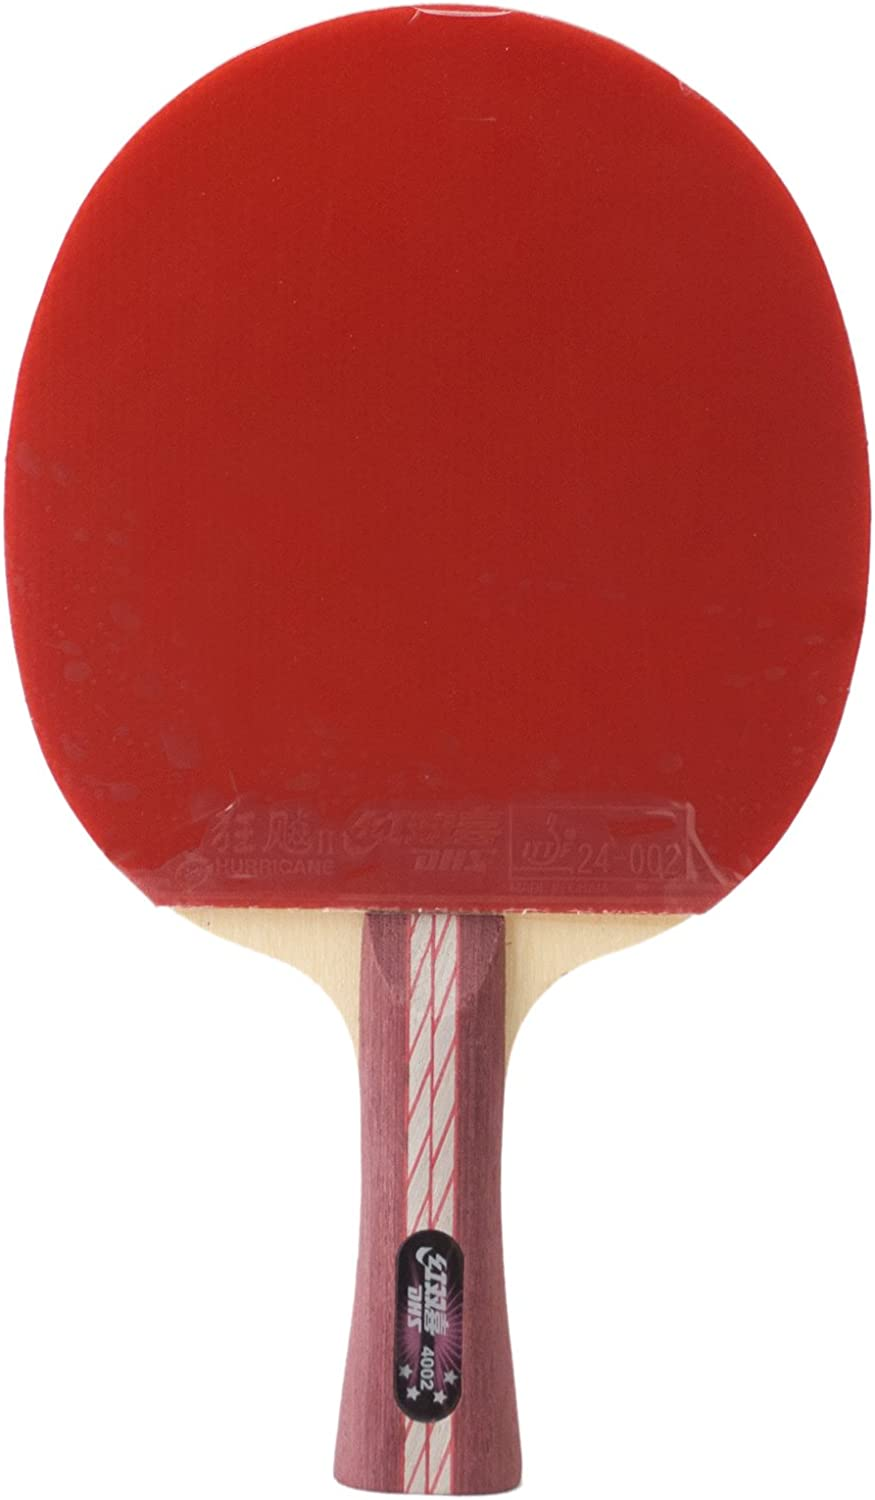 DHS flaired X4002 All-Star Double Happiness - Raqueta de ping-pong